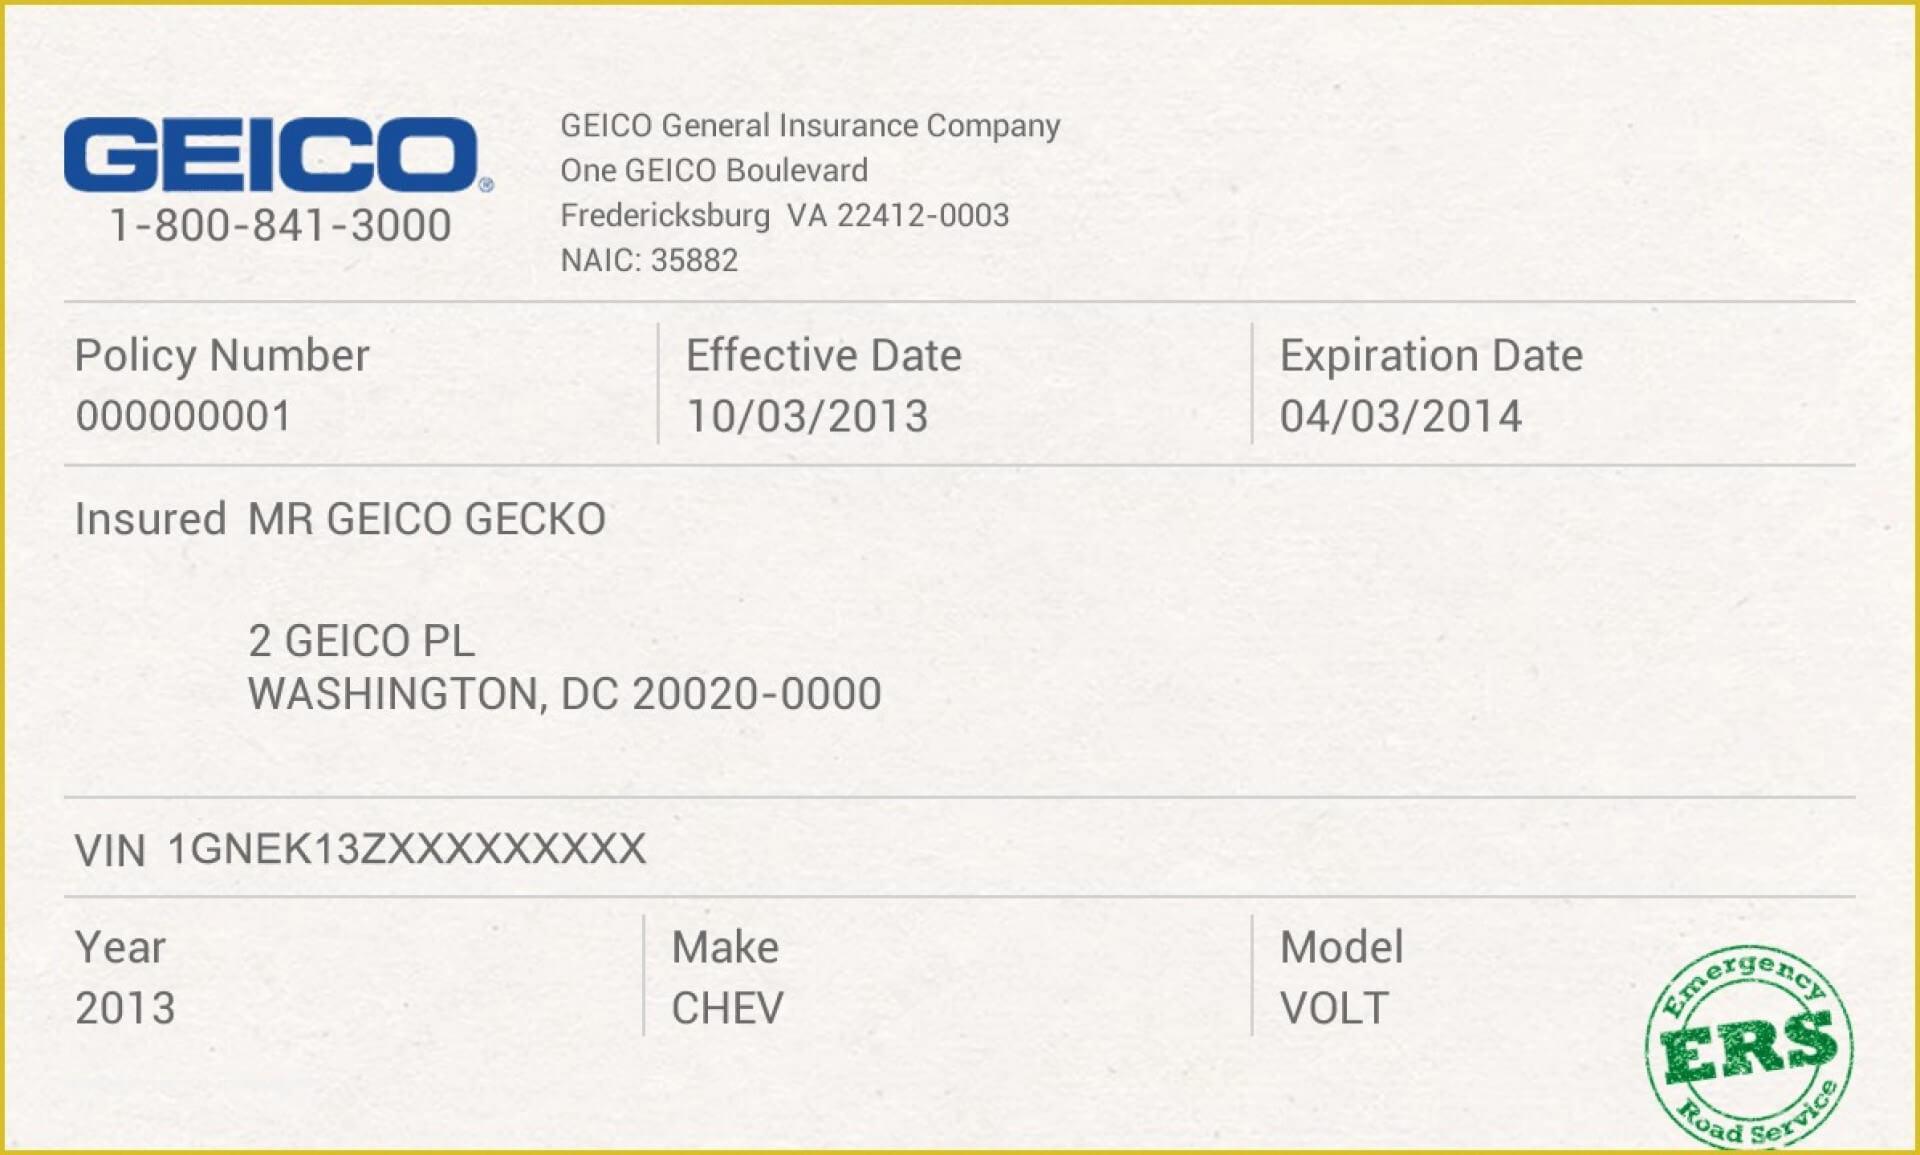 012 Company Car Policy Template Free Auto Insurance Id Card Regarding Car Insurance Card Template Download